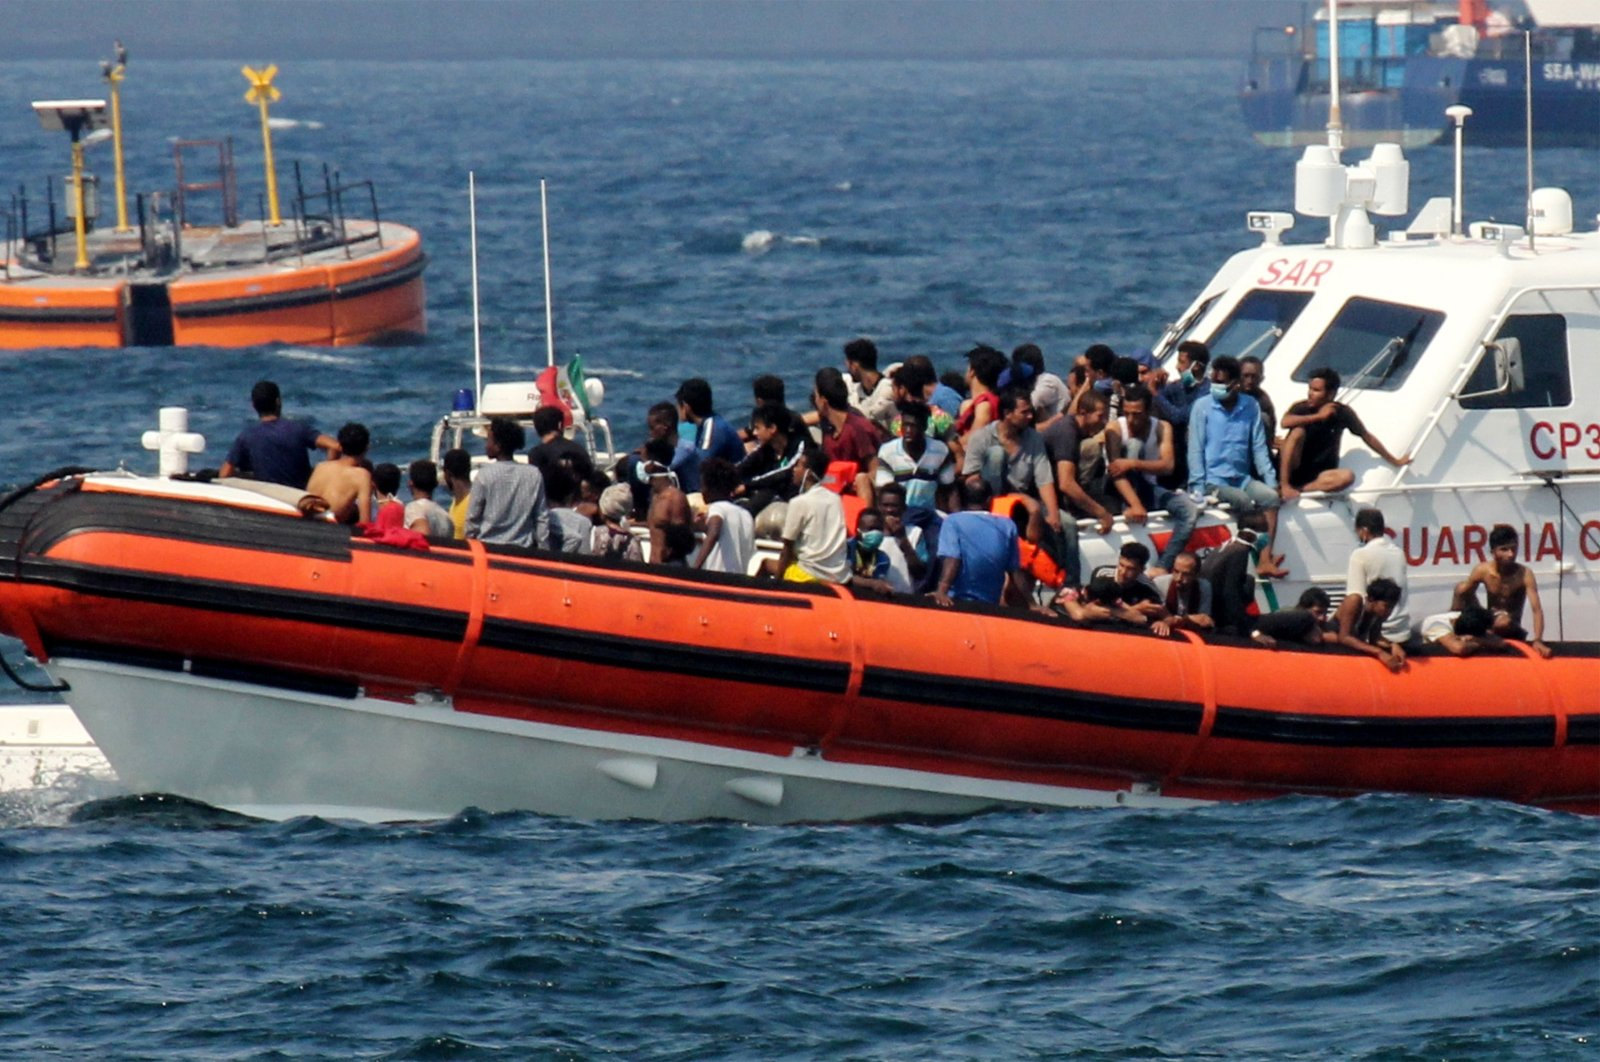 A patrol boat of the Italian Coast Guards (Guardia Costiera) transports migrants towards the port of Palermo, Sicily after they rescued them at sea after a group of 76 migrants threw themselves into the water from the rescue vessel of Spanish non-governmental organization Open Arms, off Palermo, Sicily, Italy, Sept. 17, 2020. (AFP Photo)